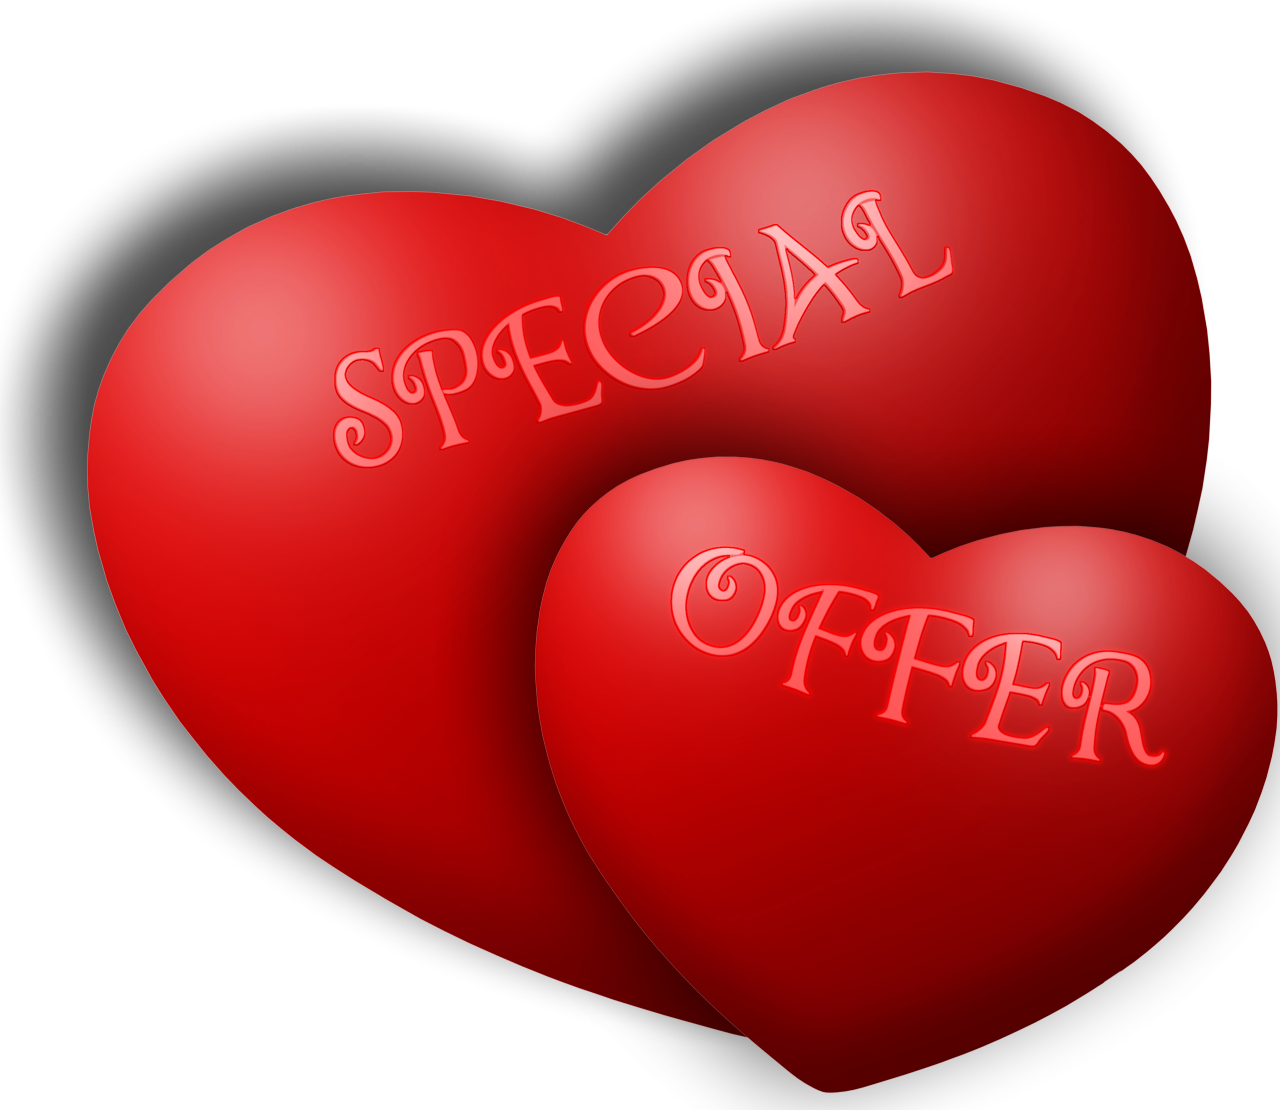 Special_offer_hearts.png